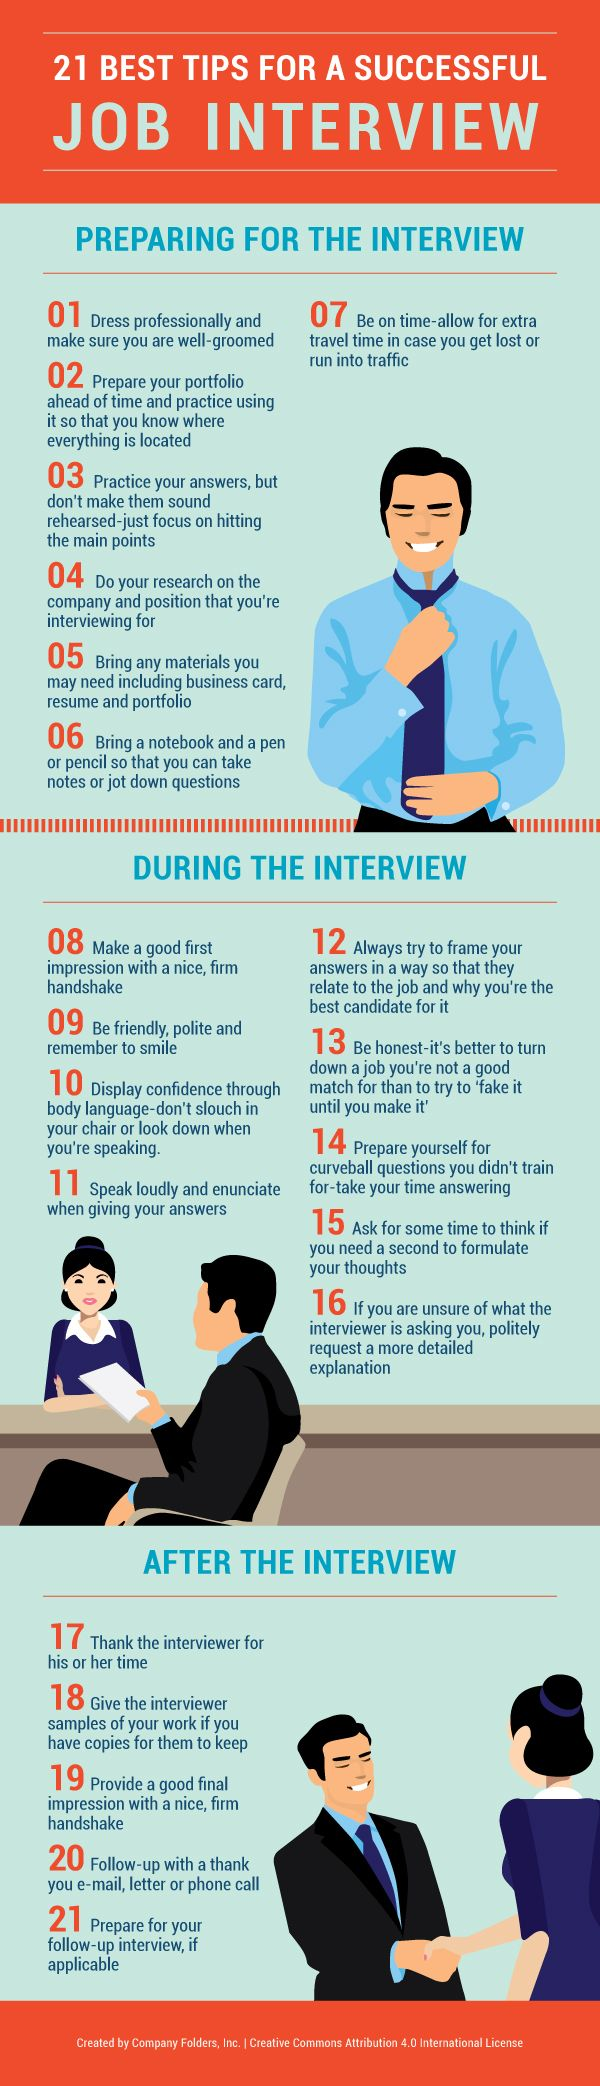 ideas about job interview tips job interview 21 tips for a successful job interview includes advice that is applicable to before during and after your employment interview